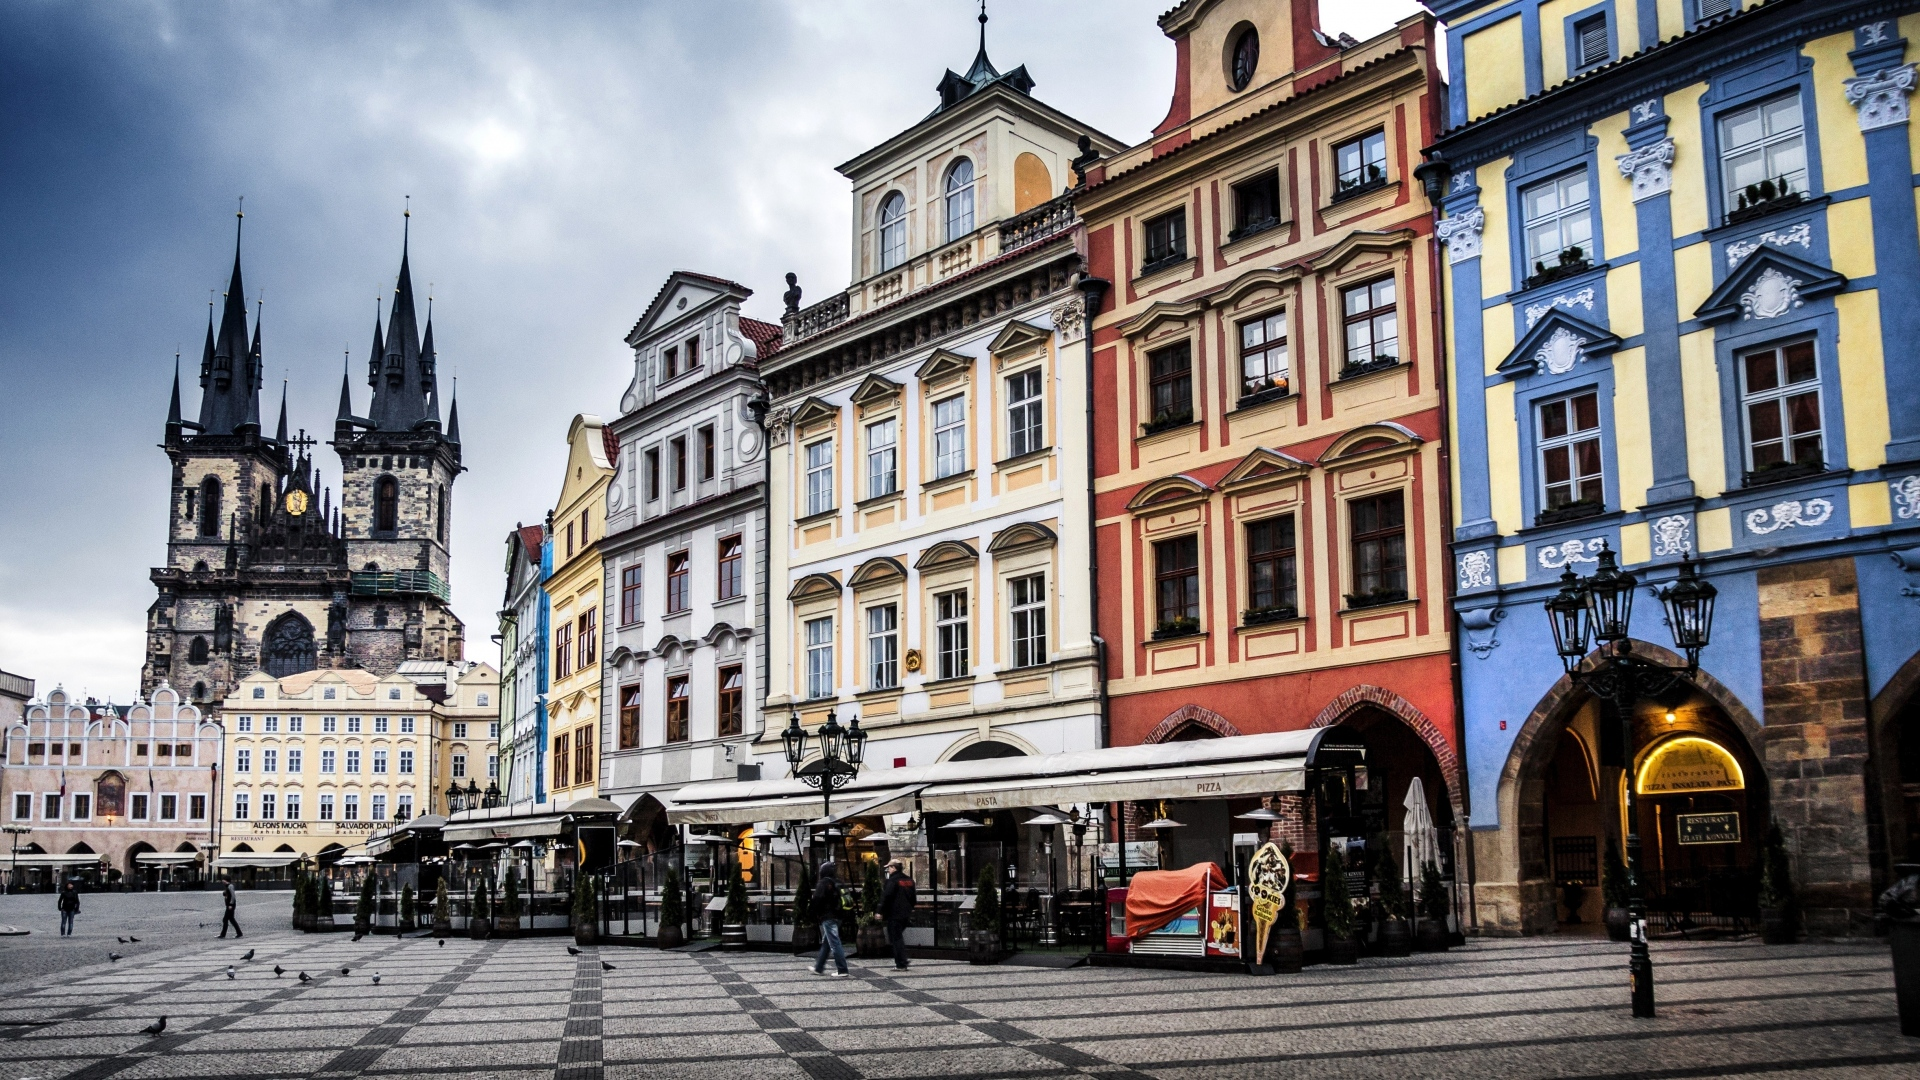 czech_republic_prague_street_building_evening_94209_1920x1080.jpg